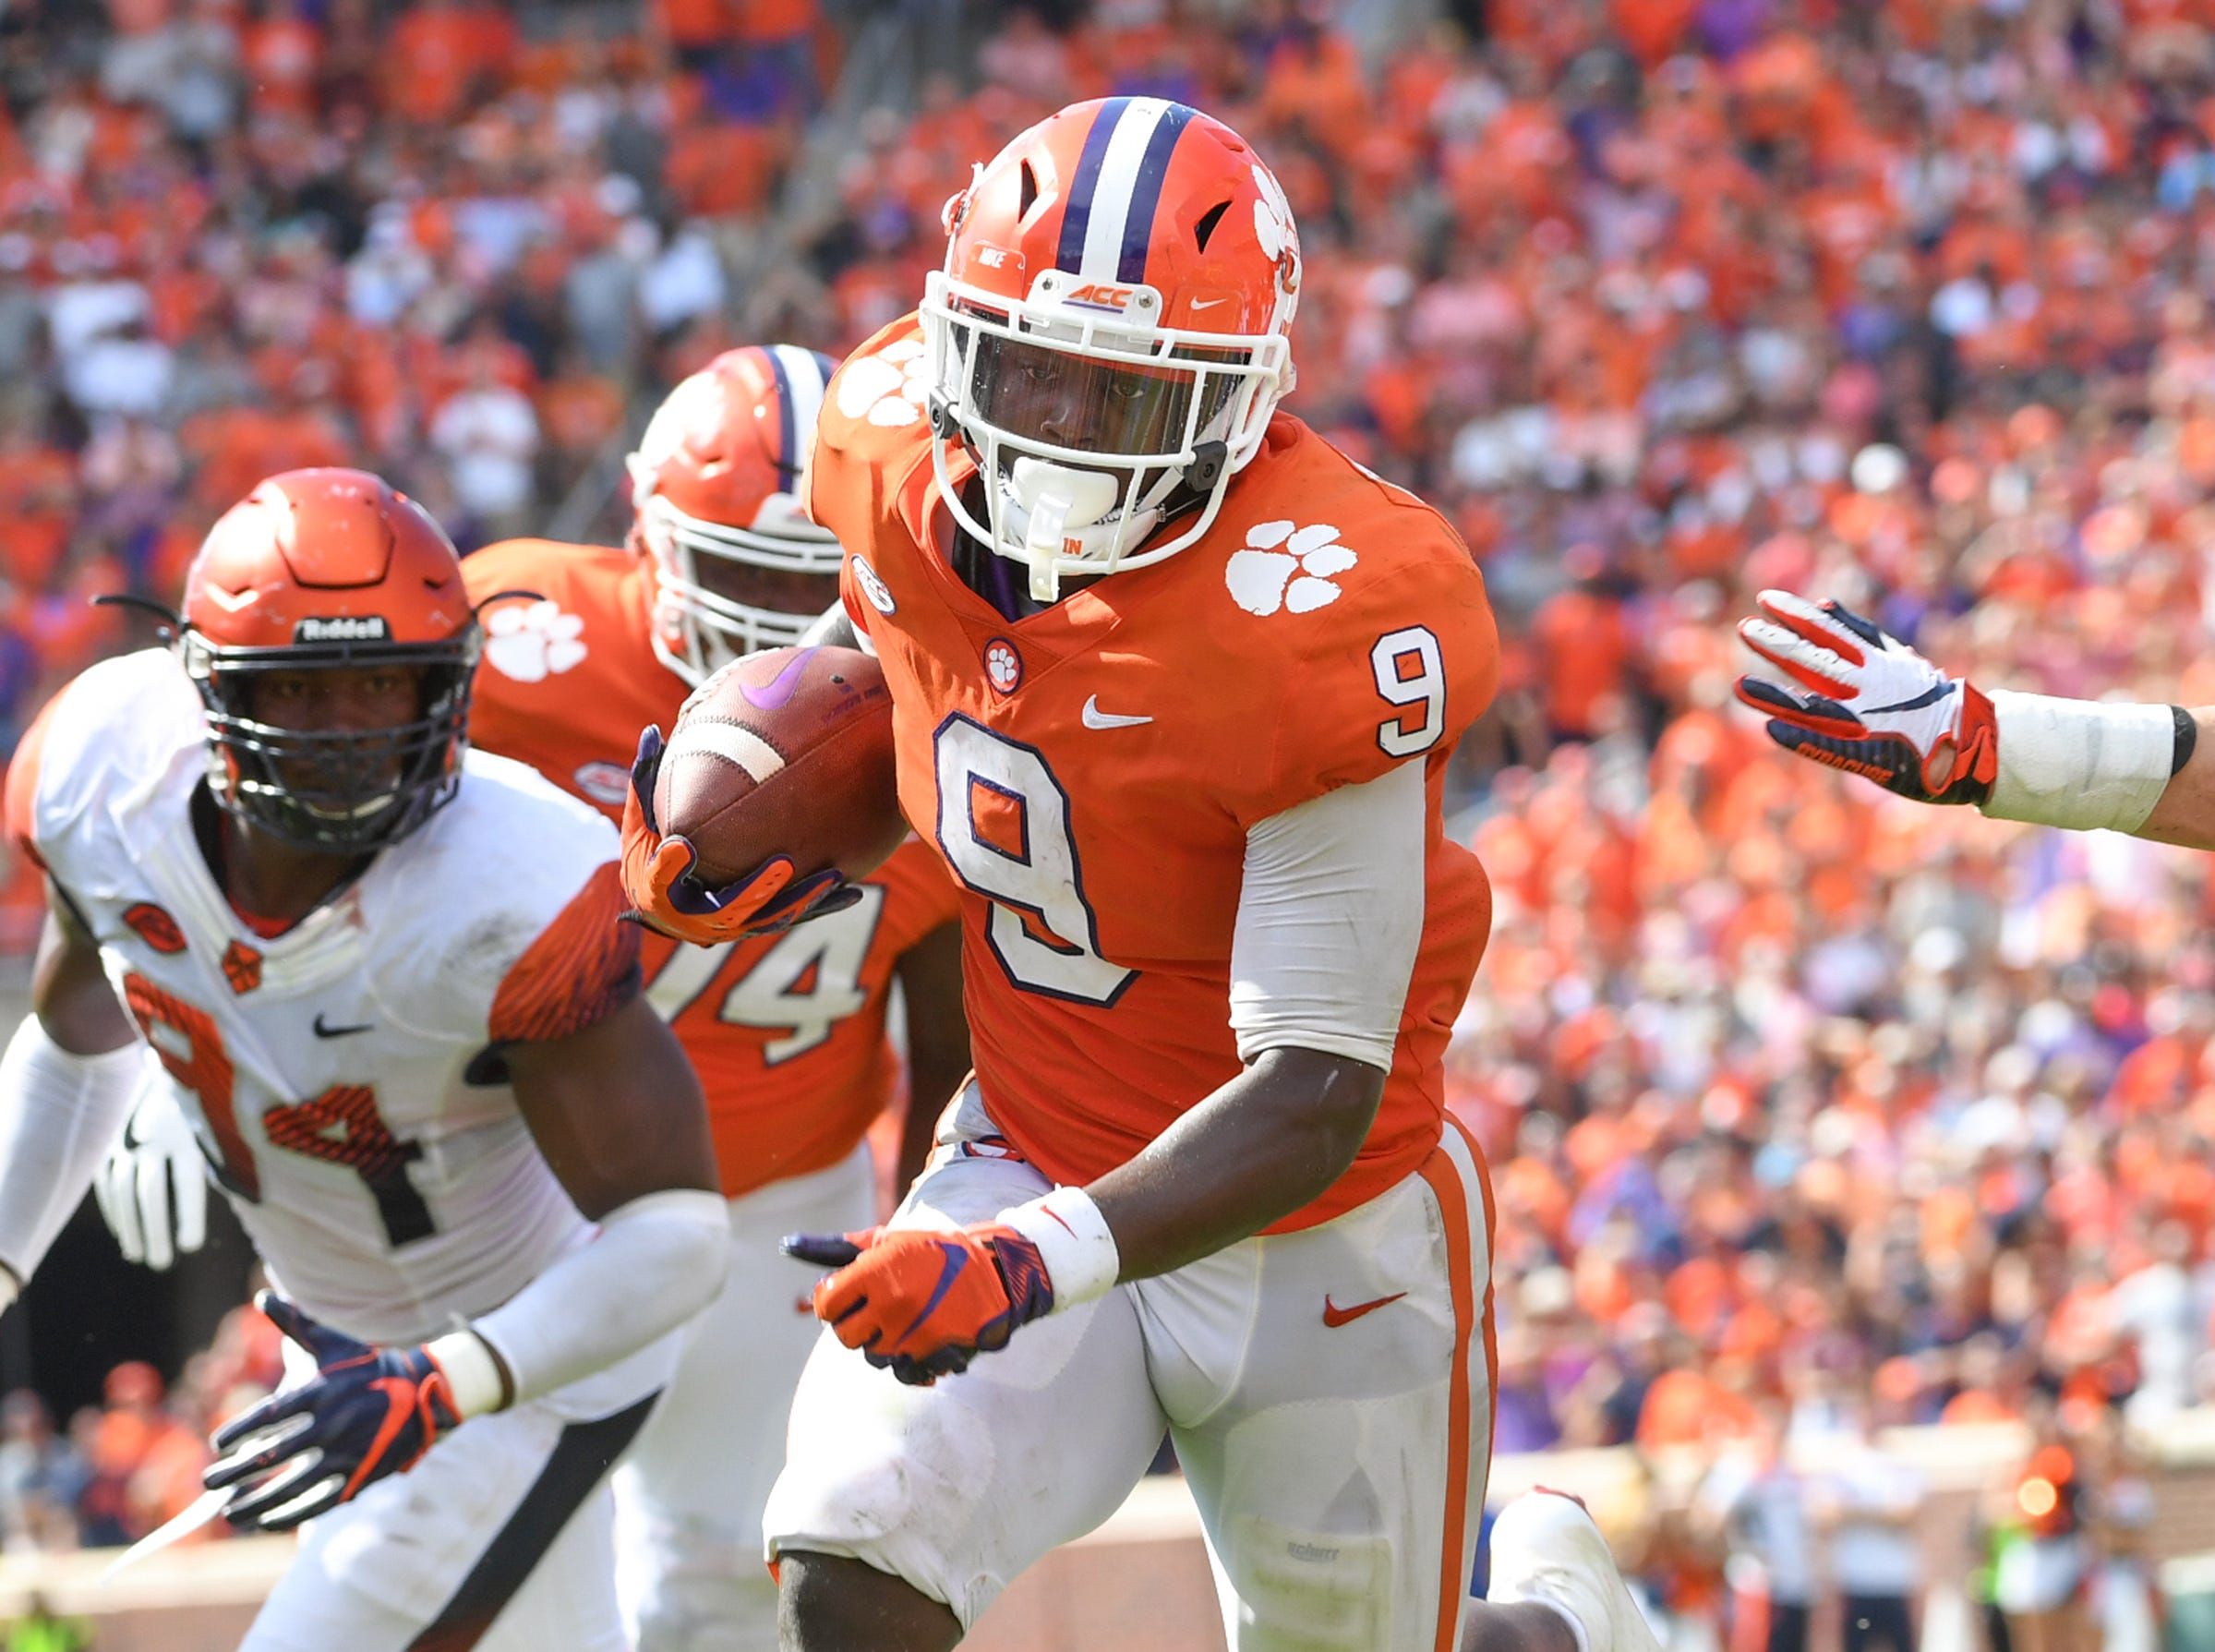 Clemson running back Travis Etienne (9) runs in the go-ahead touchdown against Syracuse during the fourth quarter in Memorial Stadium on Saturday, September 29, 2018.